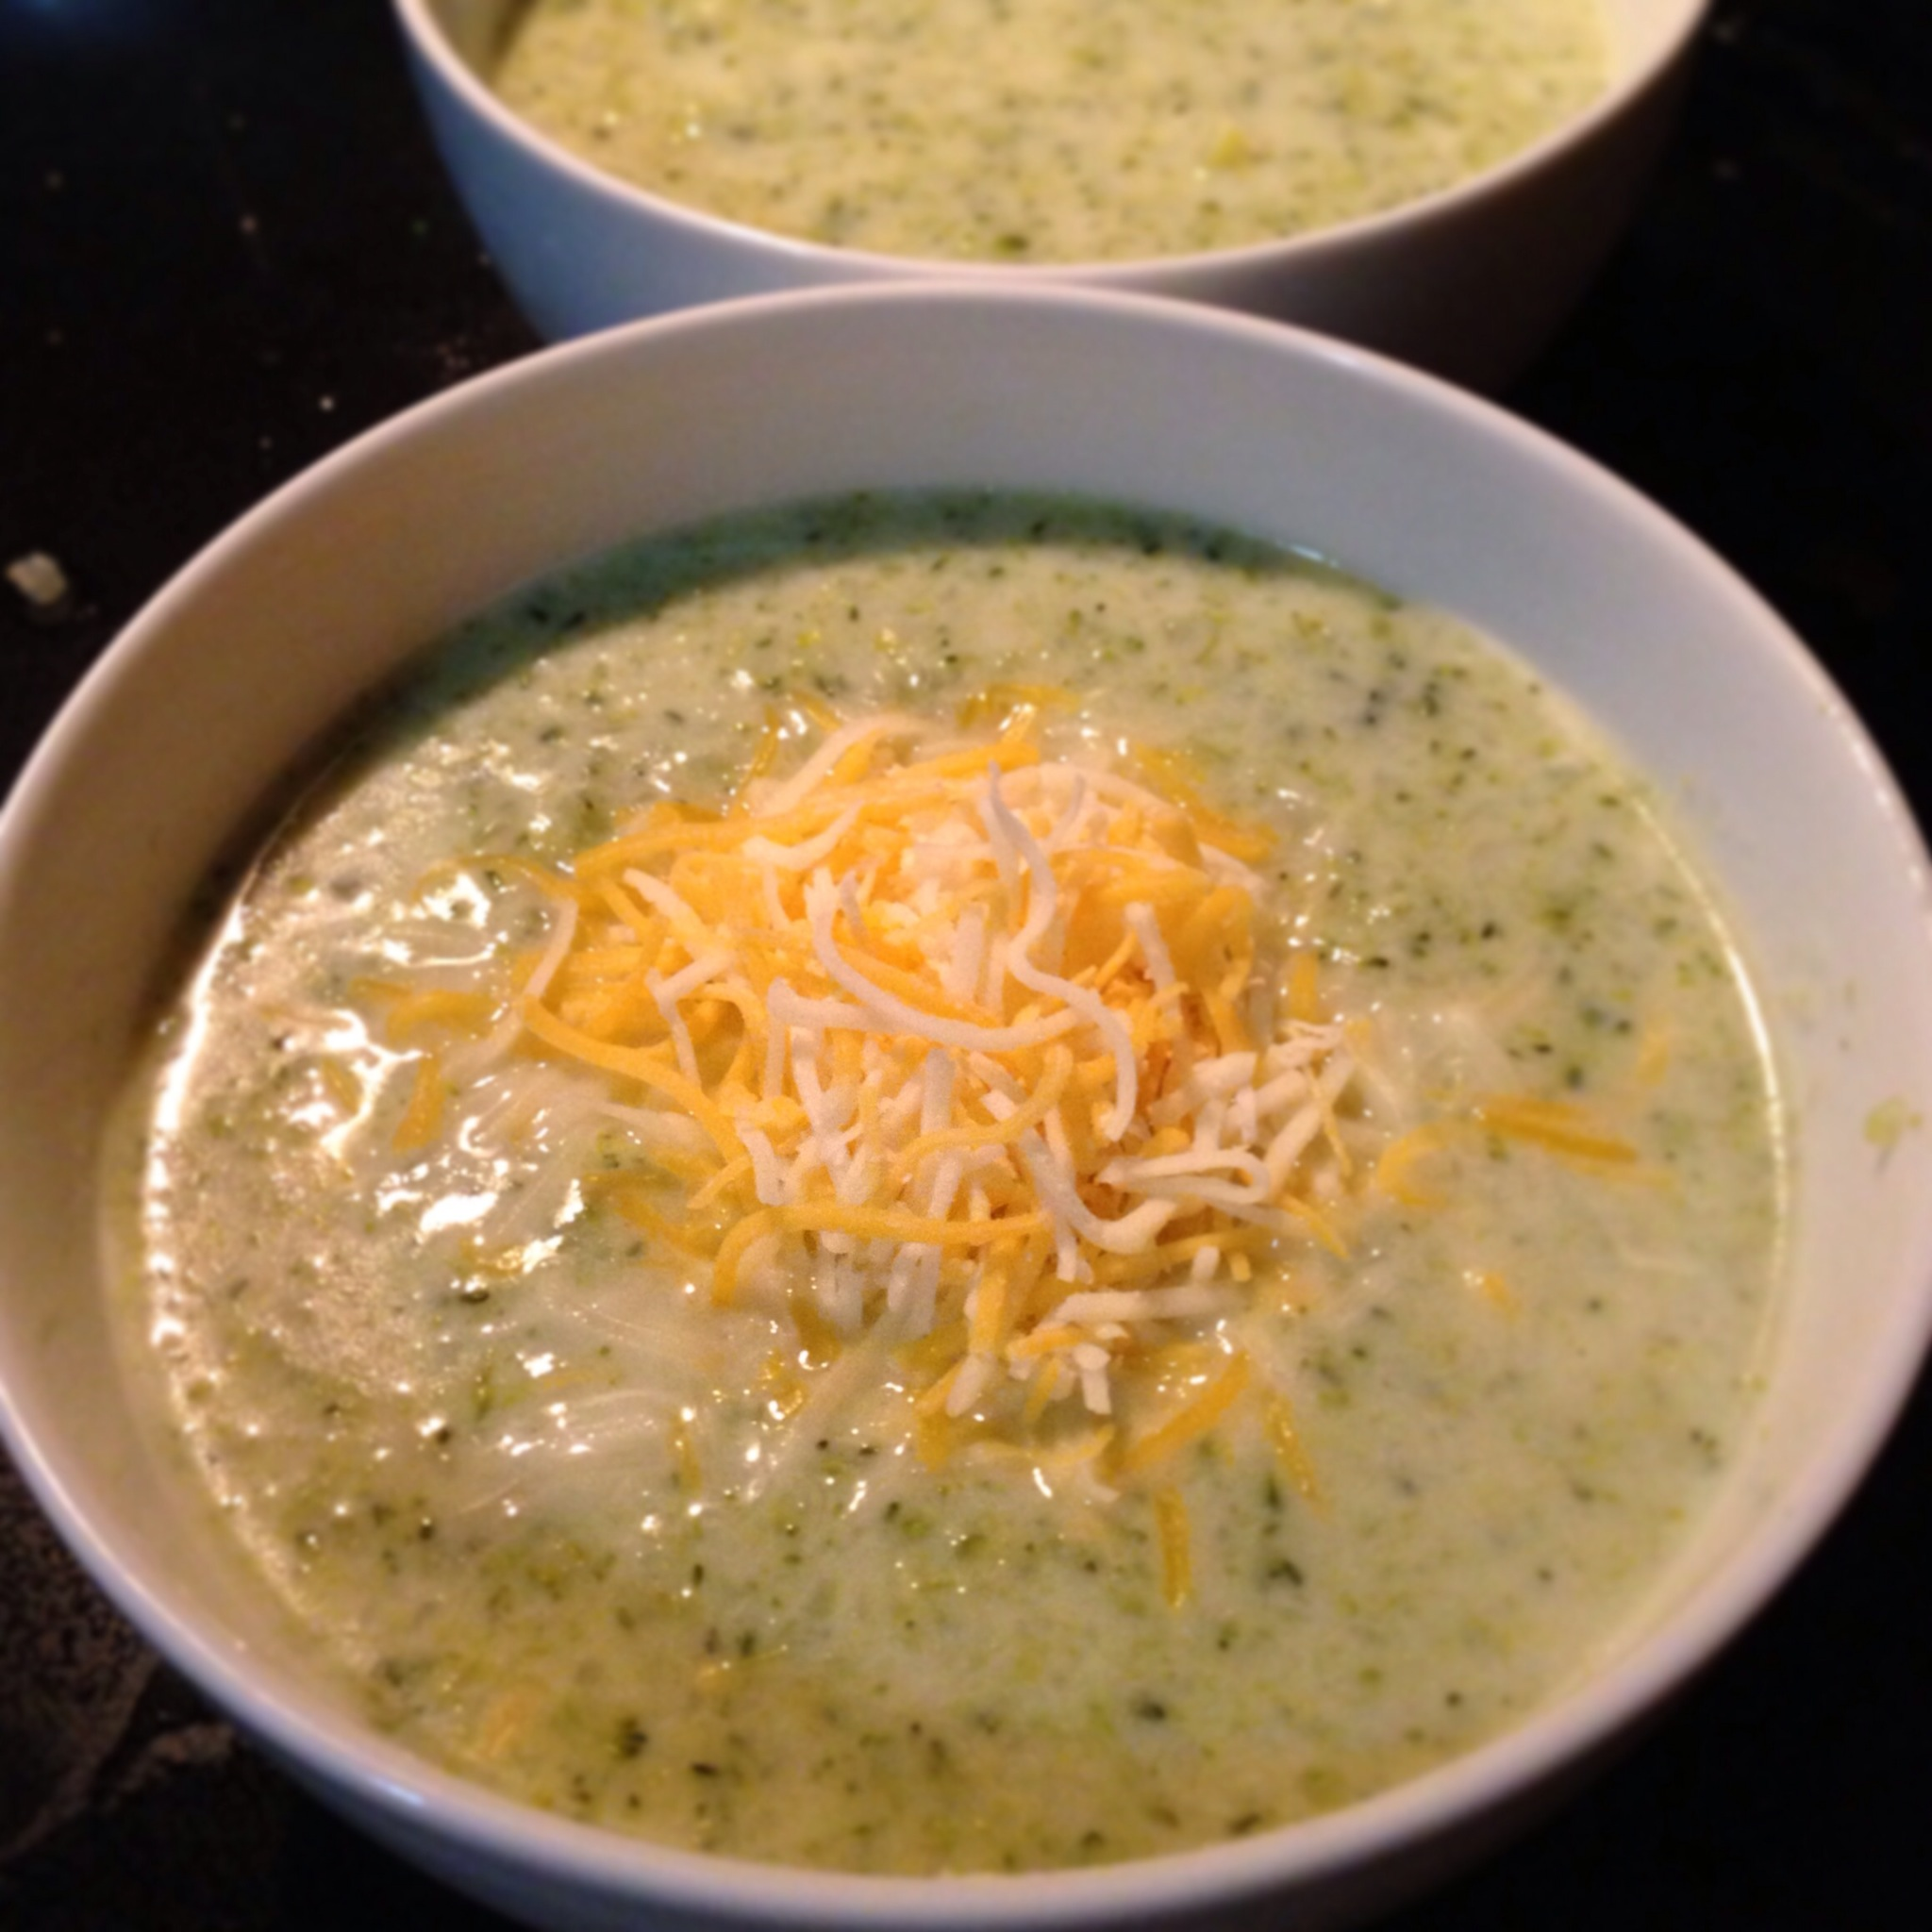 Broccoli Soup with Cheese